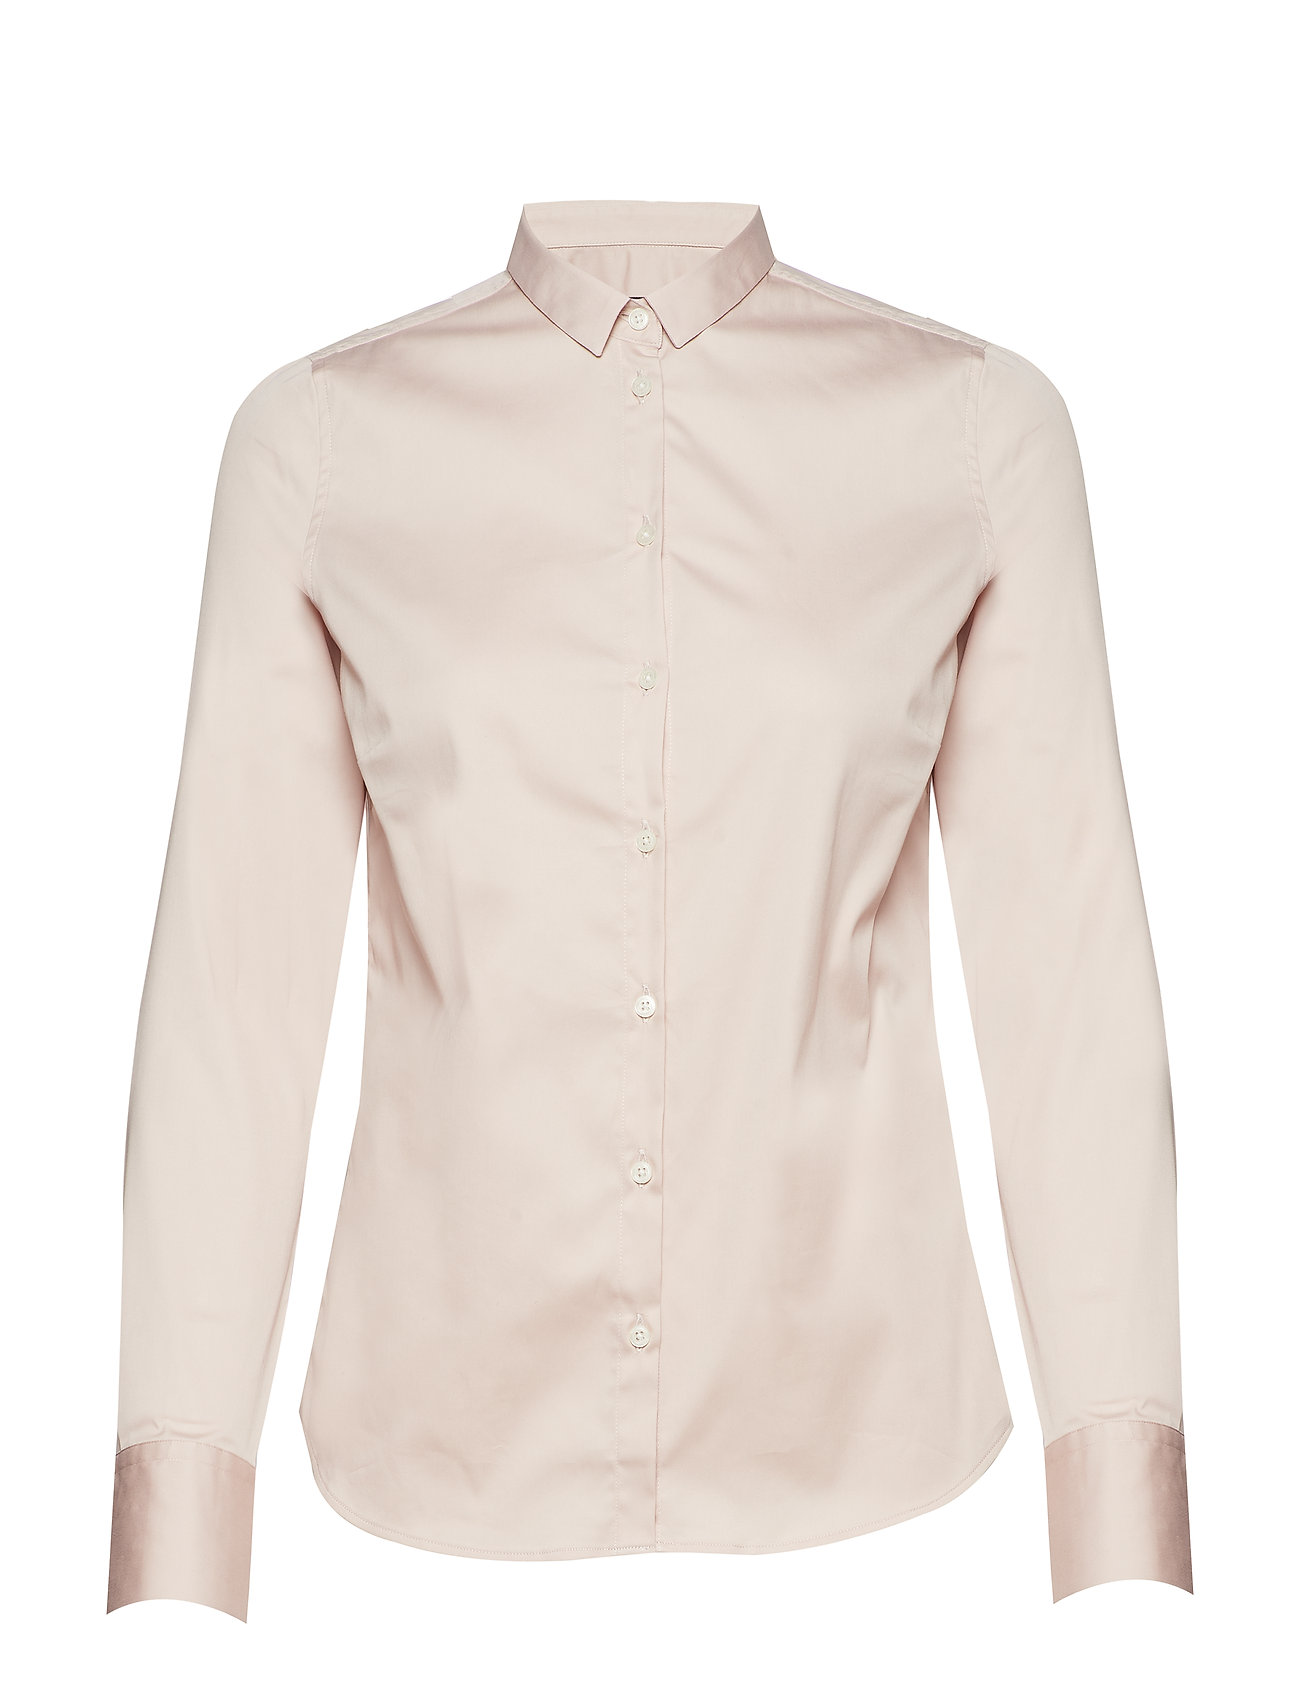 Image of Tilda Shirt (2603354707)